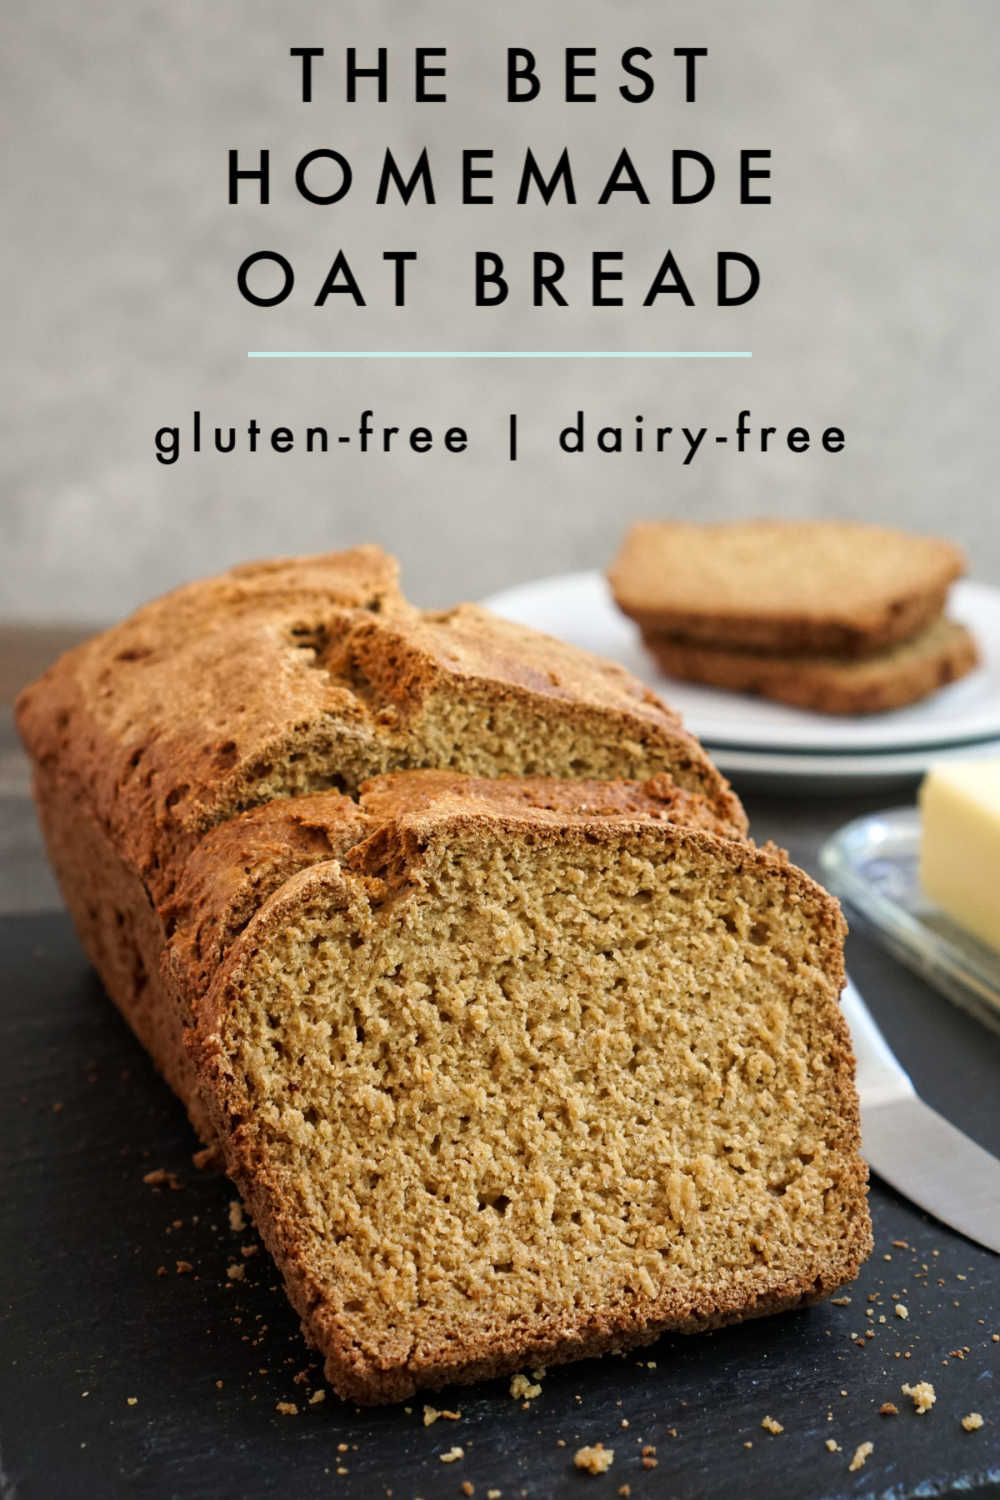 This Gluten Free Oat Bread Is So Hearty And Flavorful It S Simple To Make This Dairy Free Bread Using In 2020 Gluten Free Oat Bread Dairy Free Bread Real Food Recipes